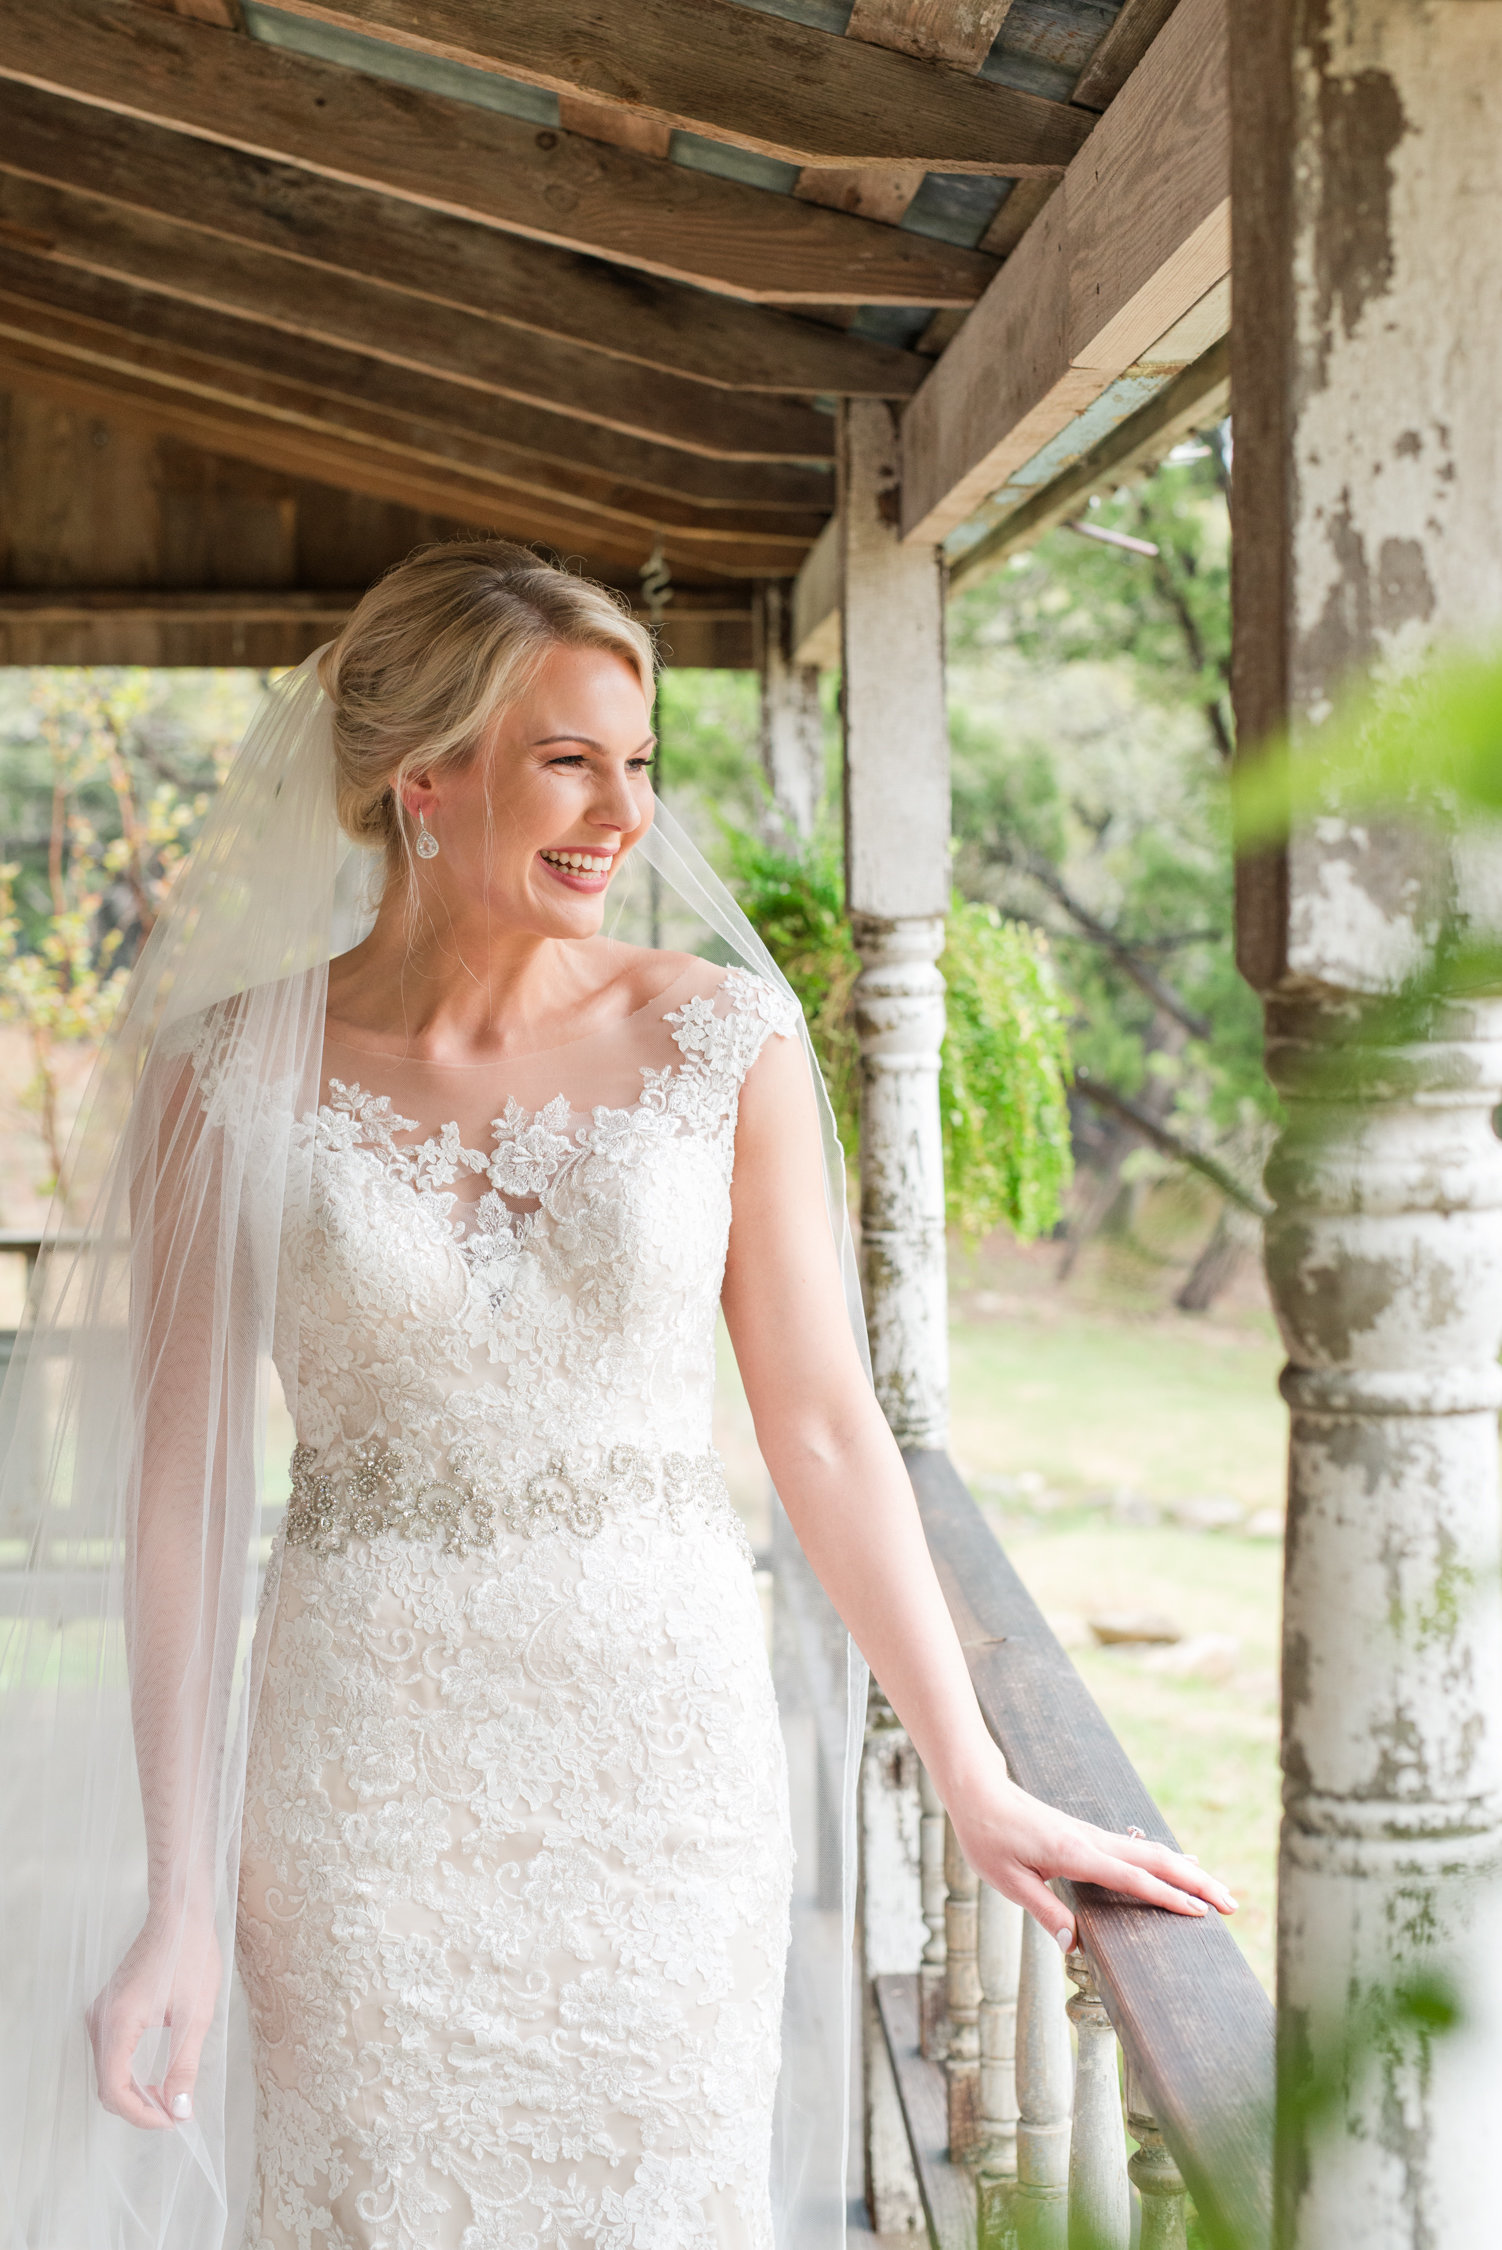 Bridal Portraits on front porch of Victorian Cottage at Rustic Ranch in Wimberley, Texas